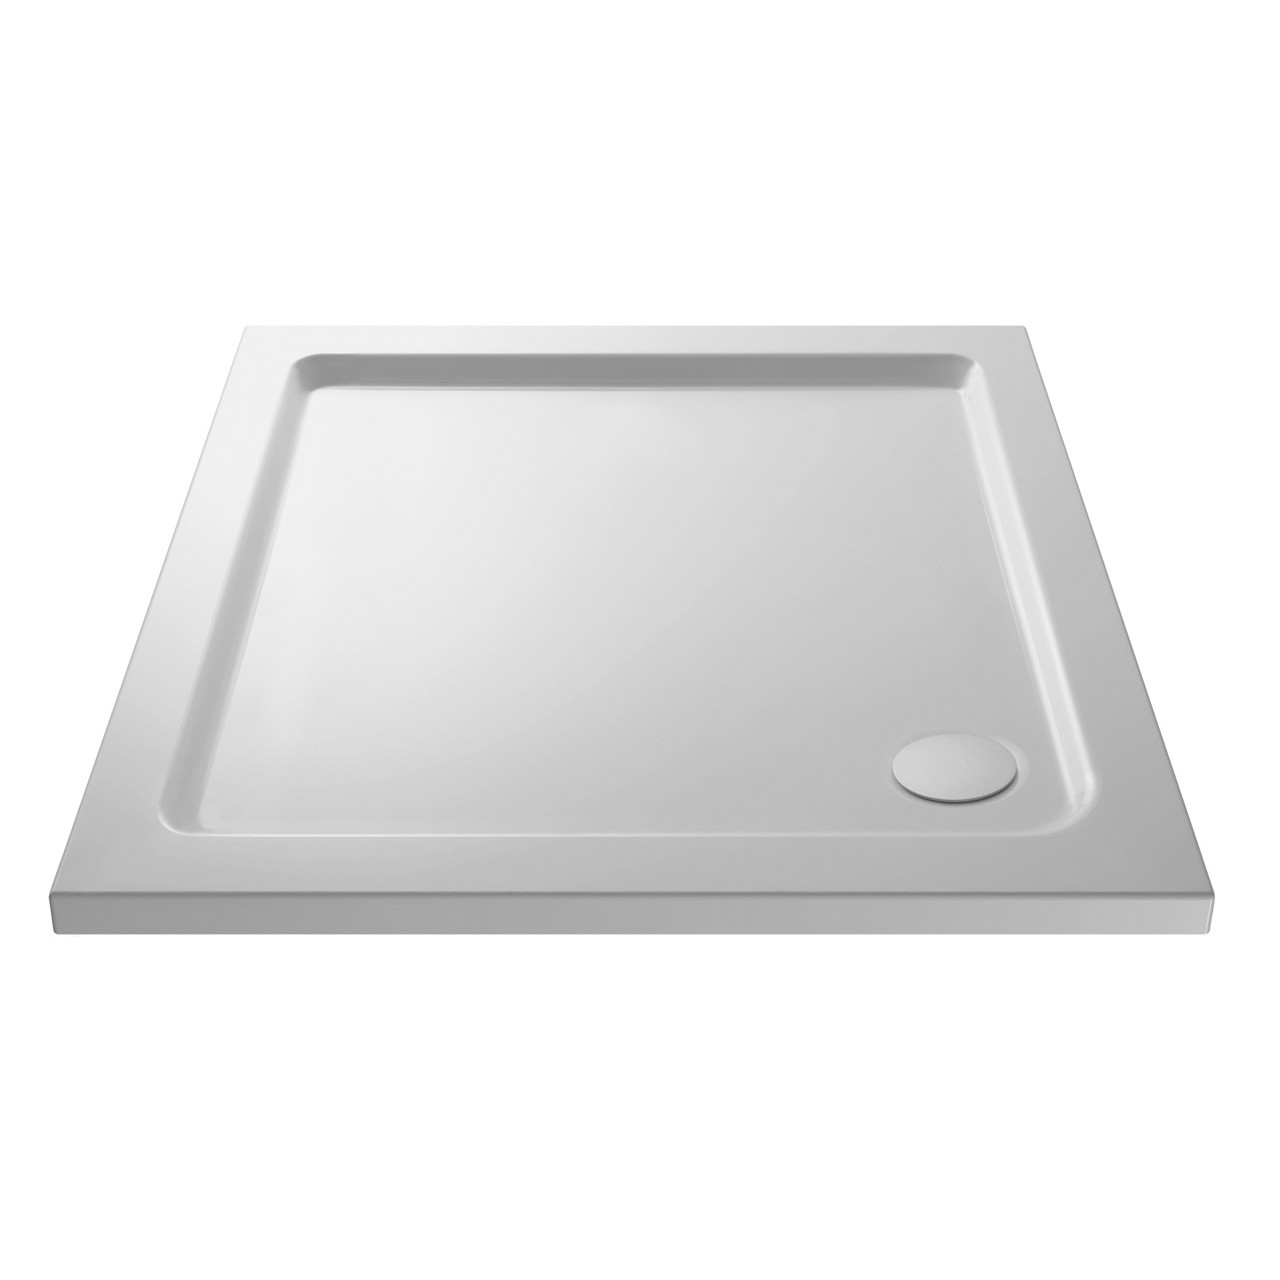 Premiere Pearlstone 1000mm x 1000mm x 40mm Square Shower Tray - NTP015